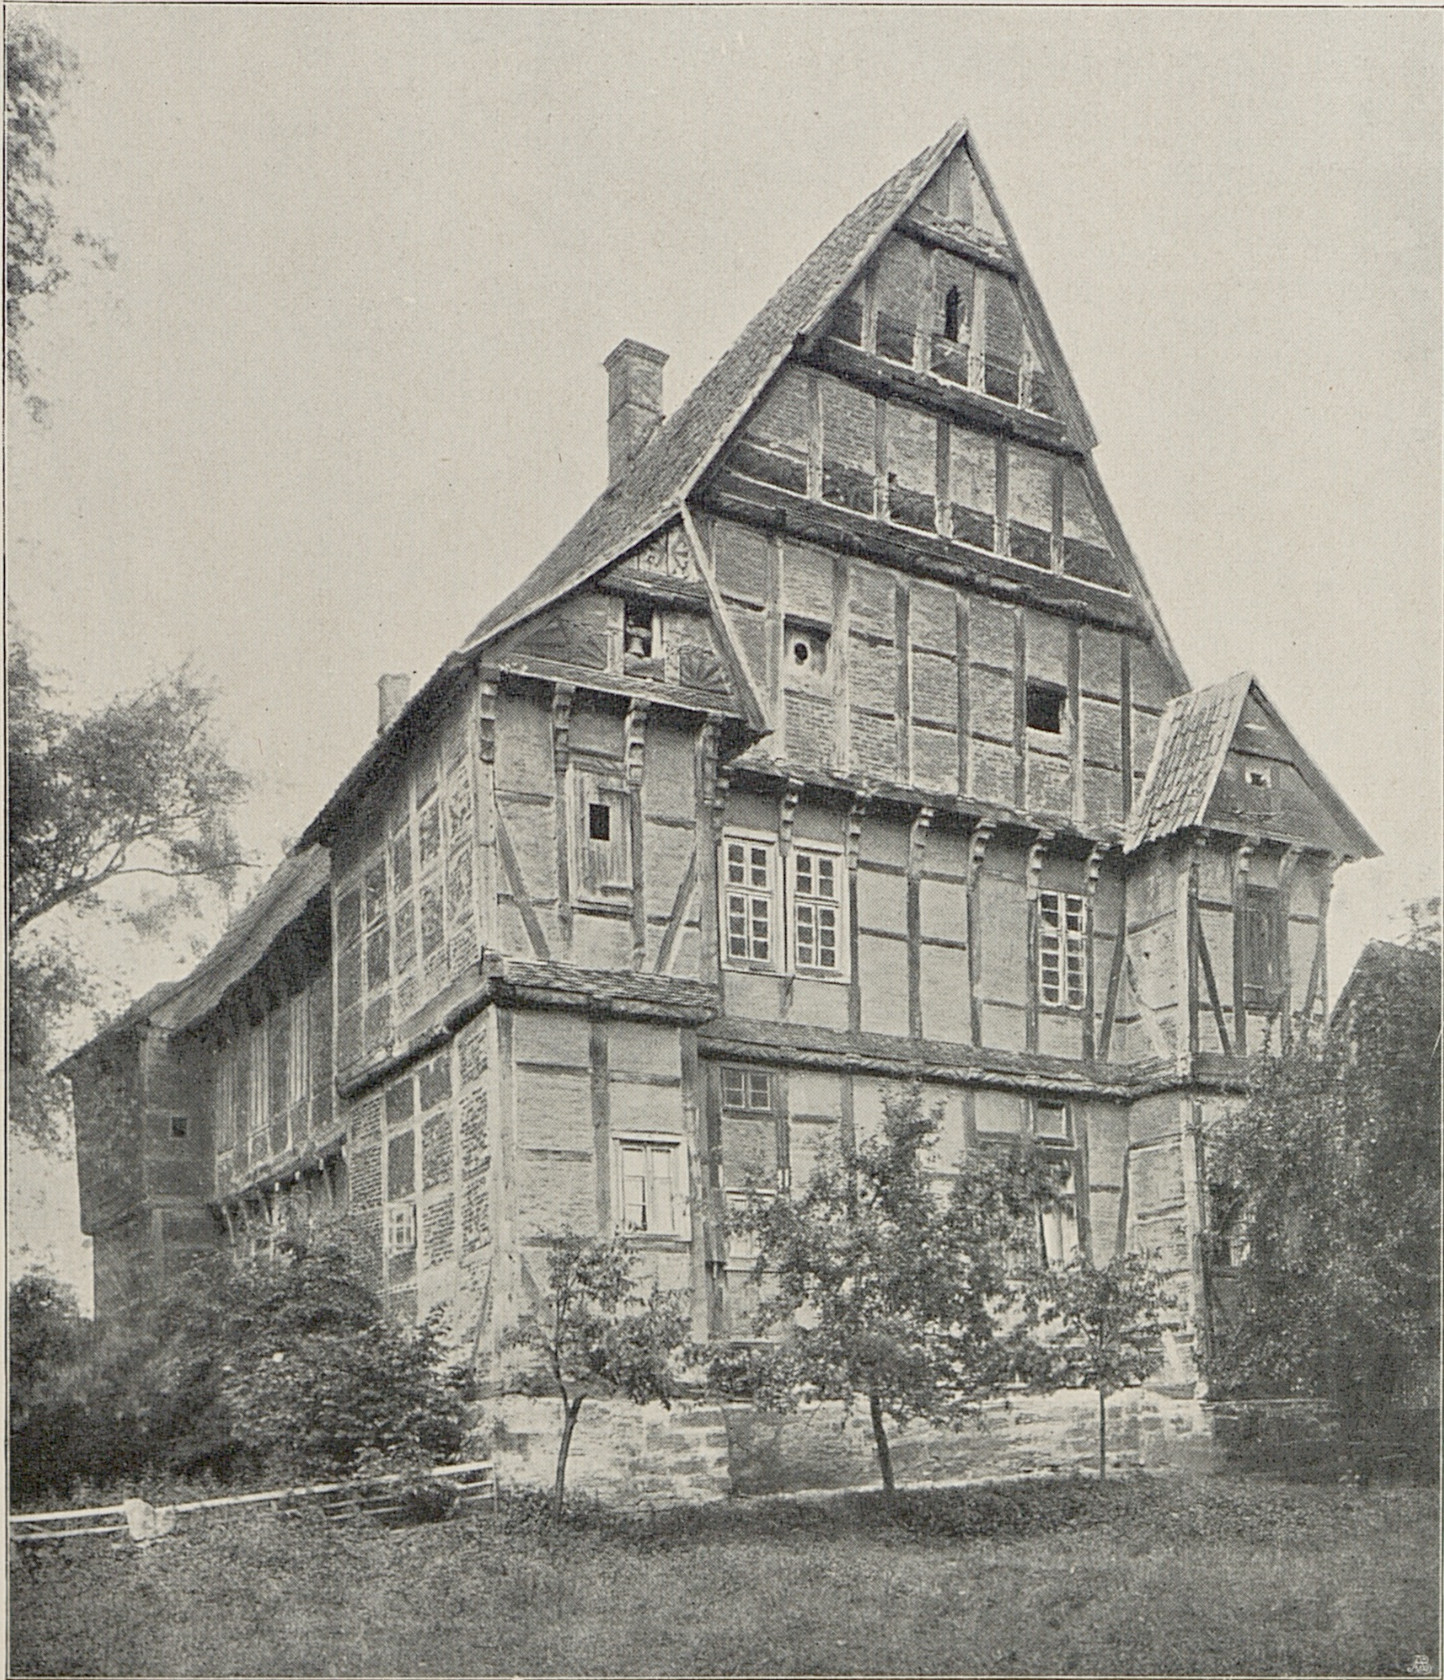 Haus Aussel in Germany where a white lady roams. Her spirit is an omen of death.